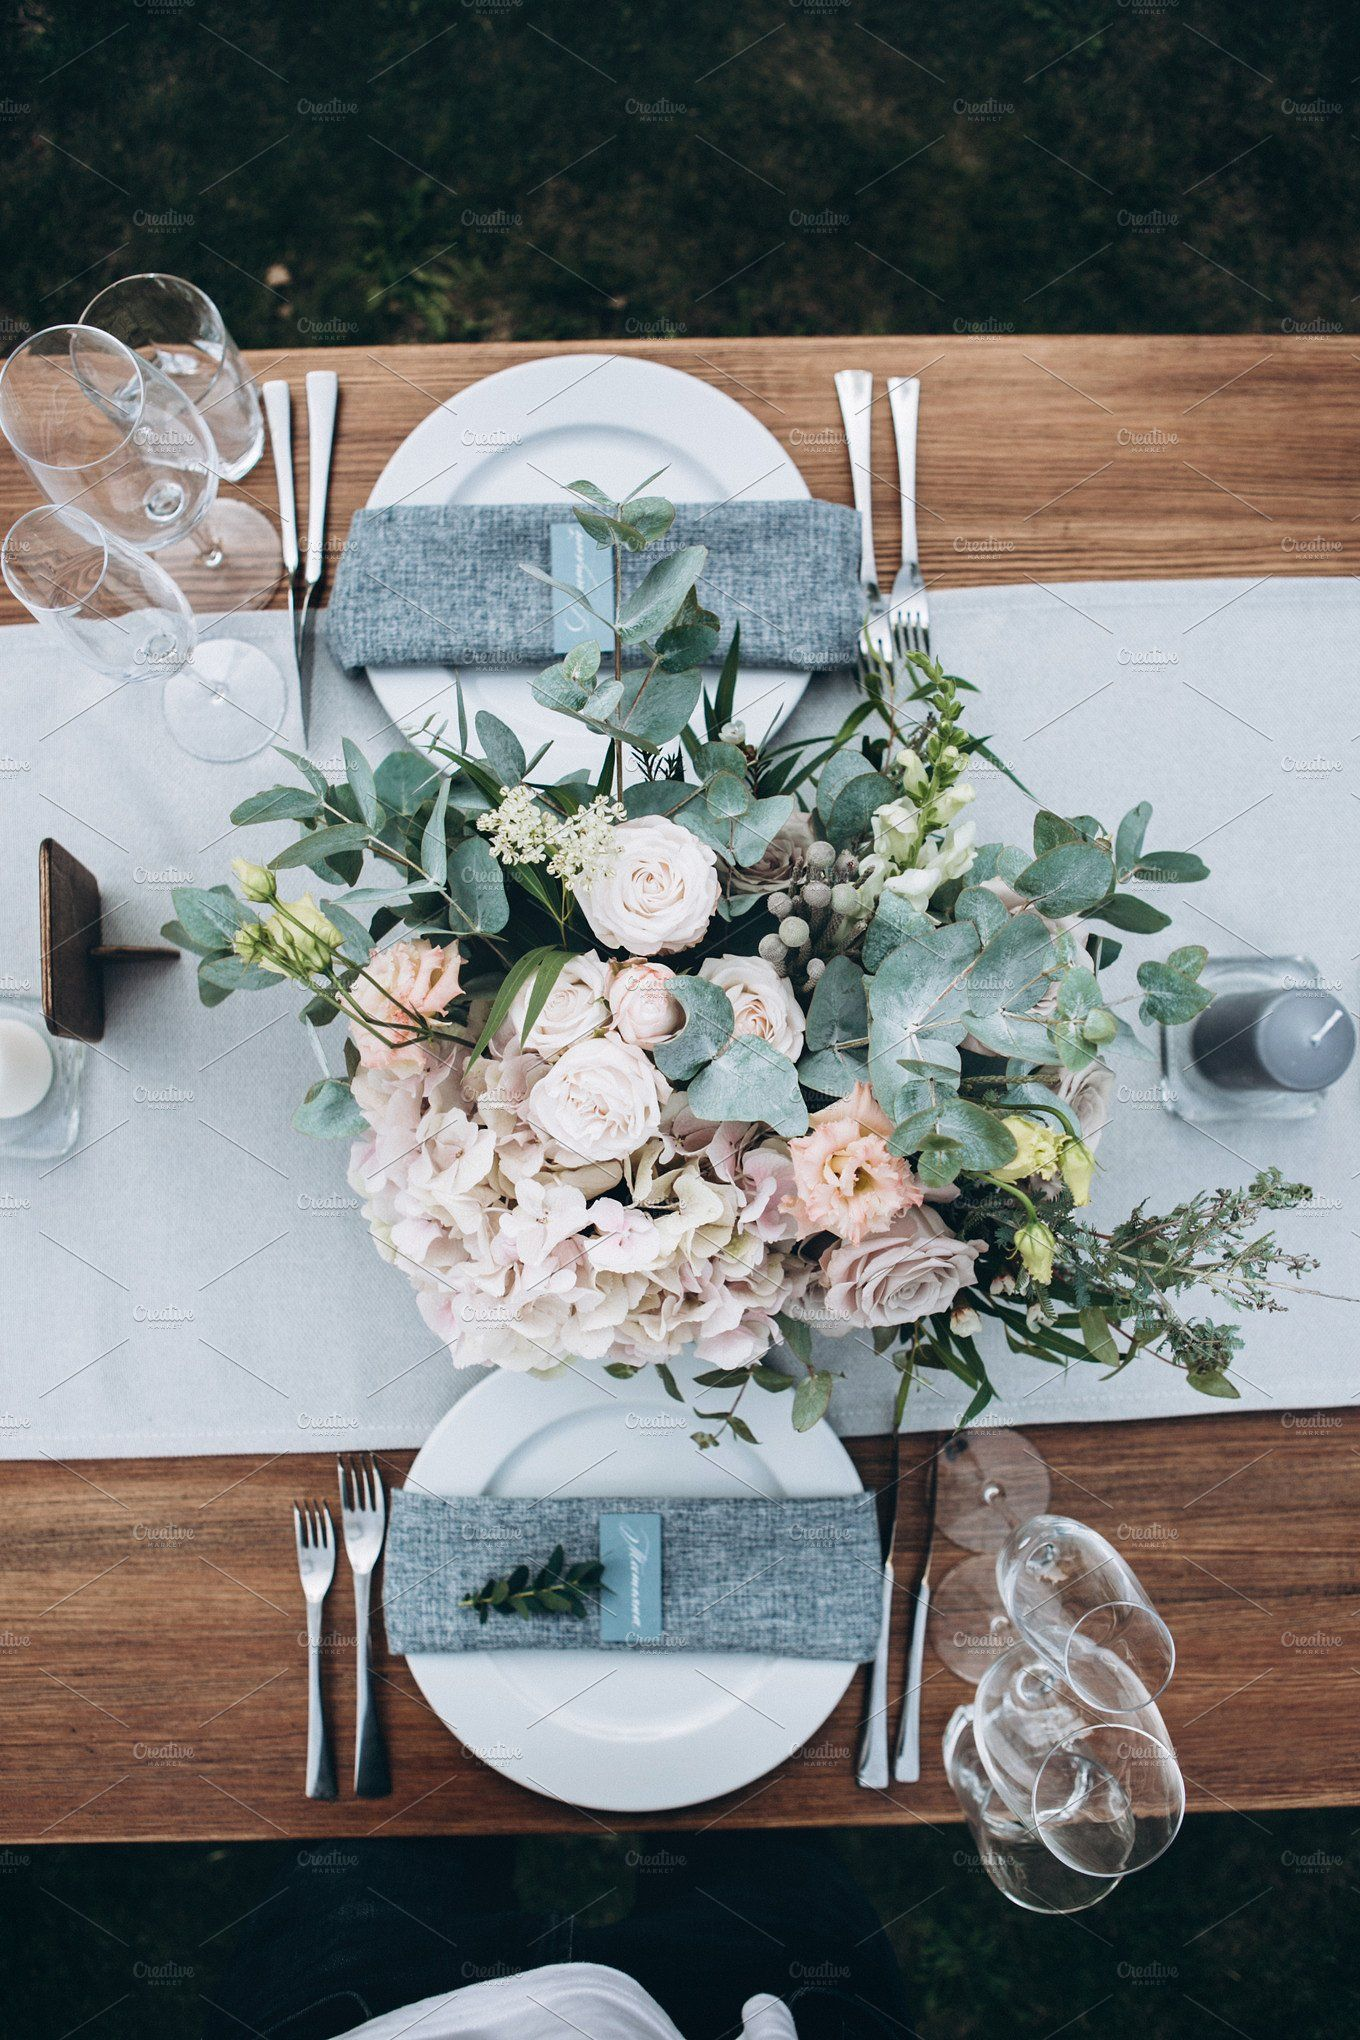 Wedding Table Decoration Table Decorations Wedding Table Wedding Table Centerpieces